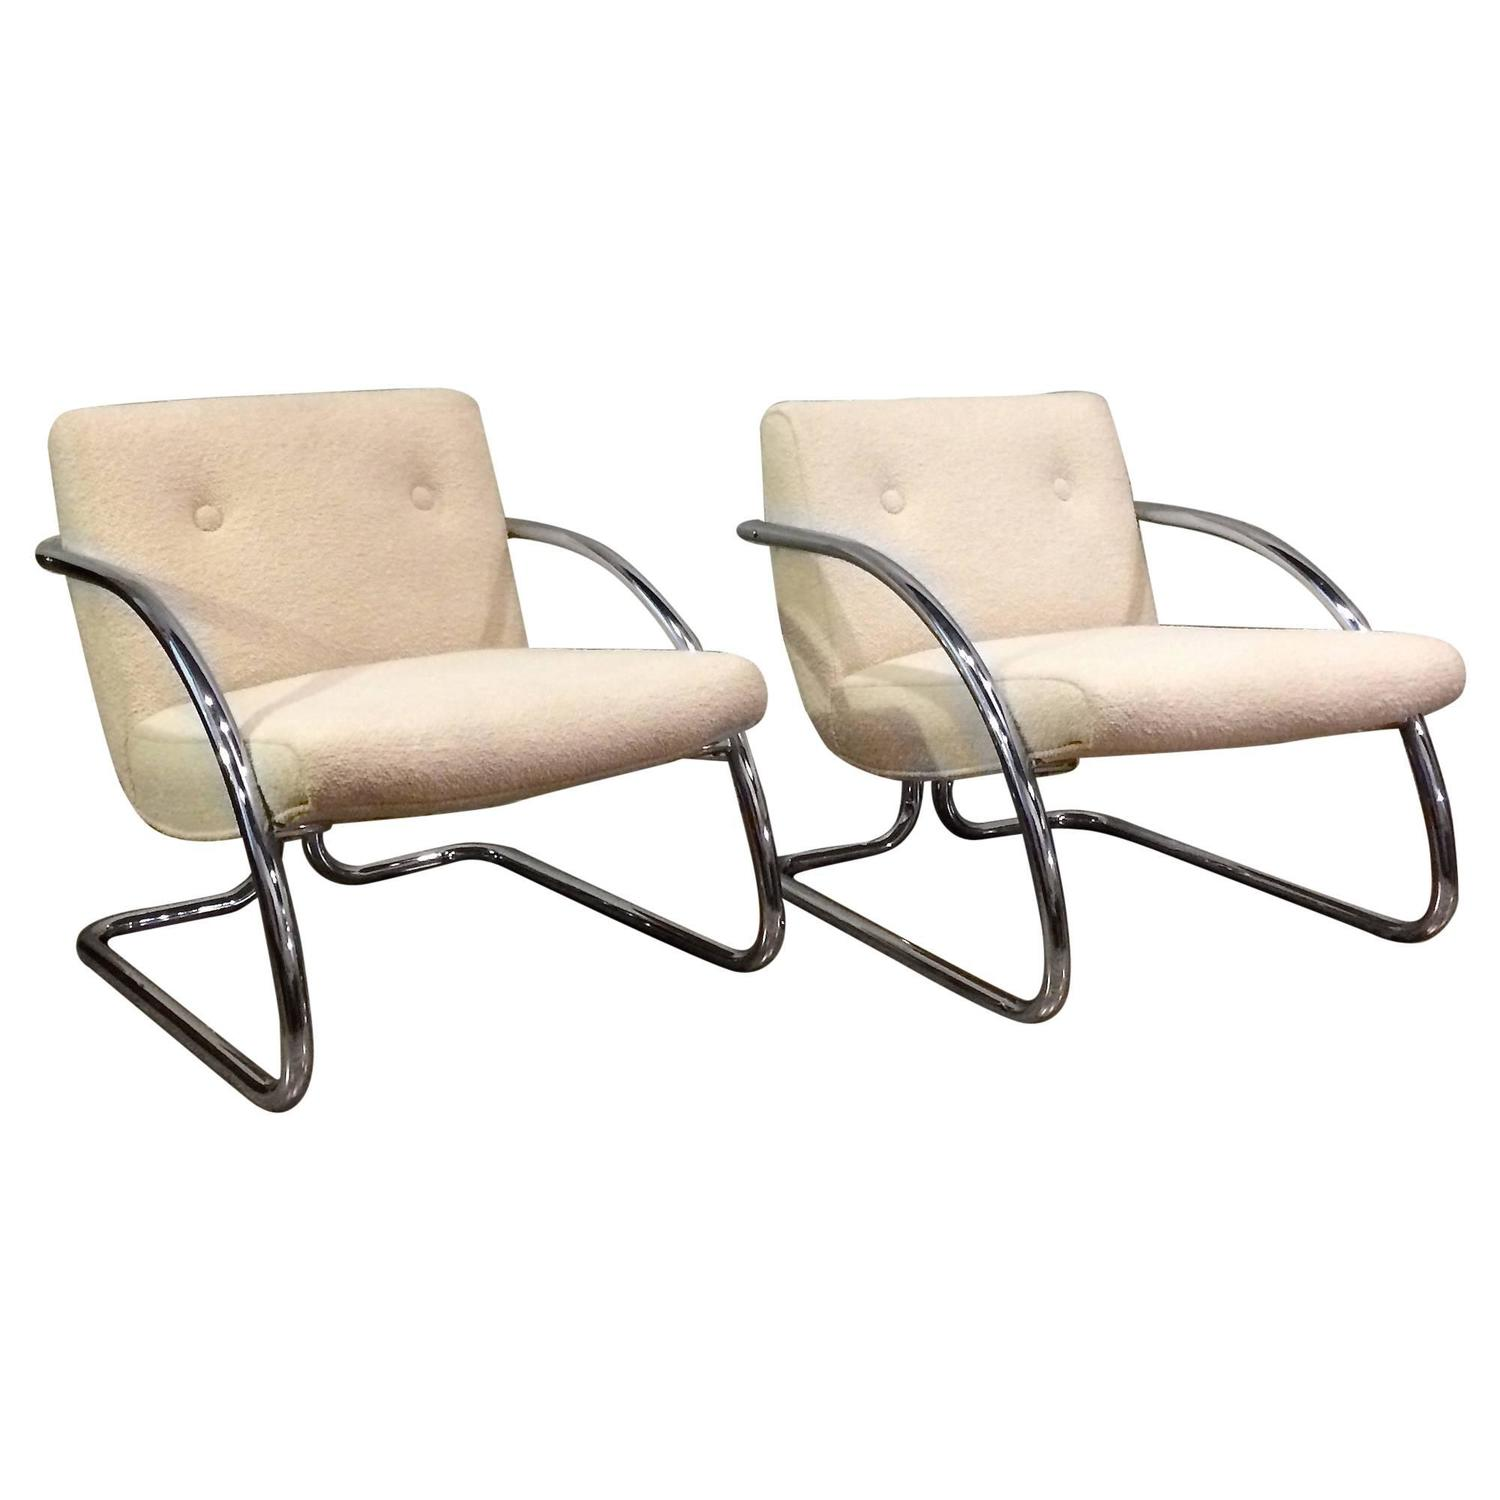 Tubular Chrome Upholstered Lounge Chairs For Sale at 1stdibs